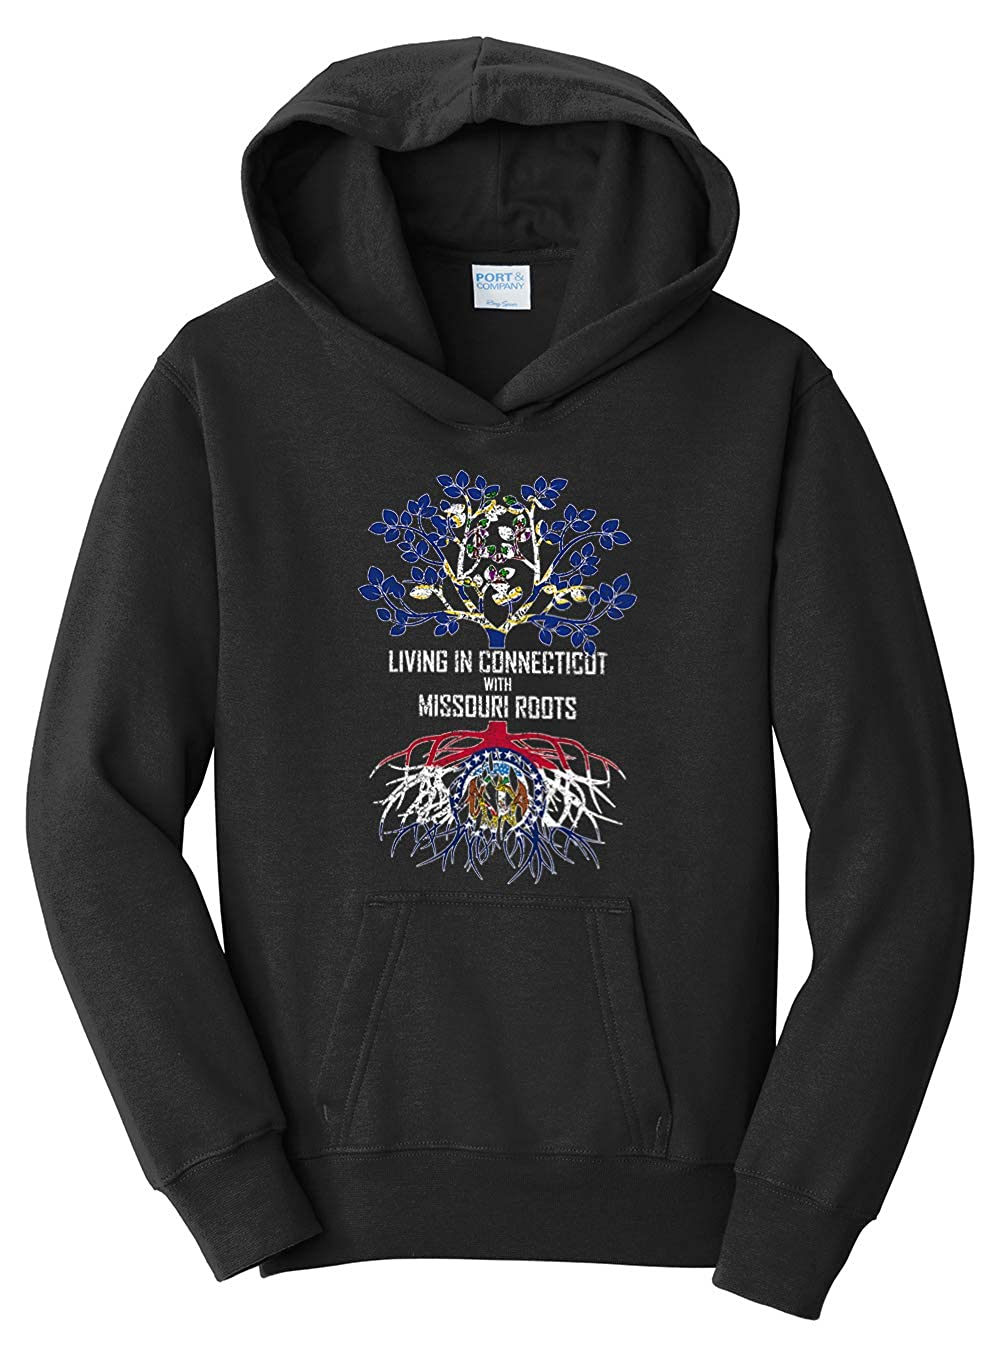 Tenacitee Girls Living in Connecticut with Missouri Roots Hooded Sweatshirt